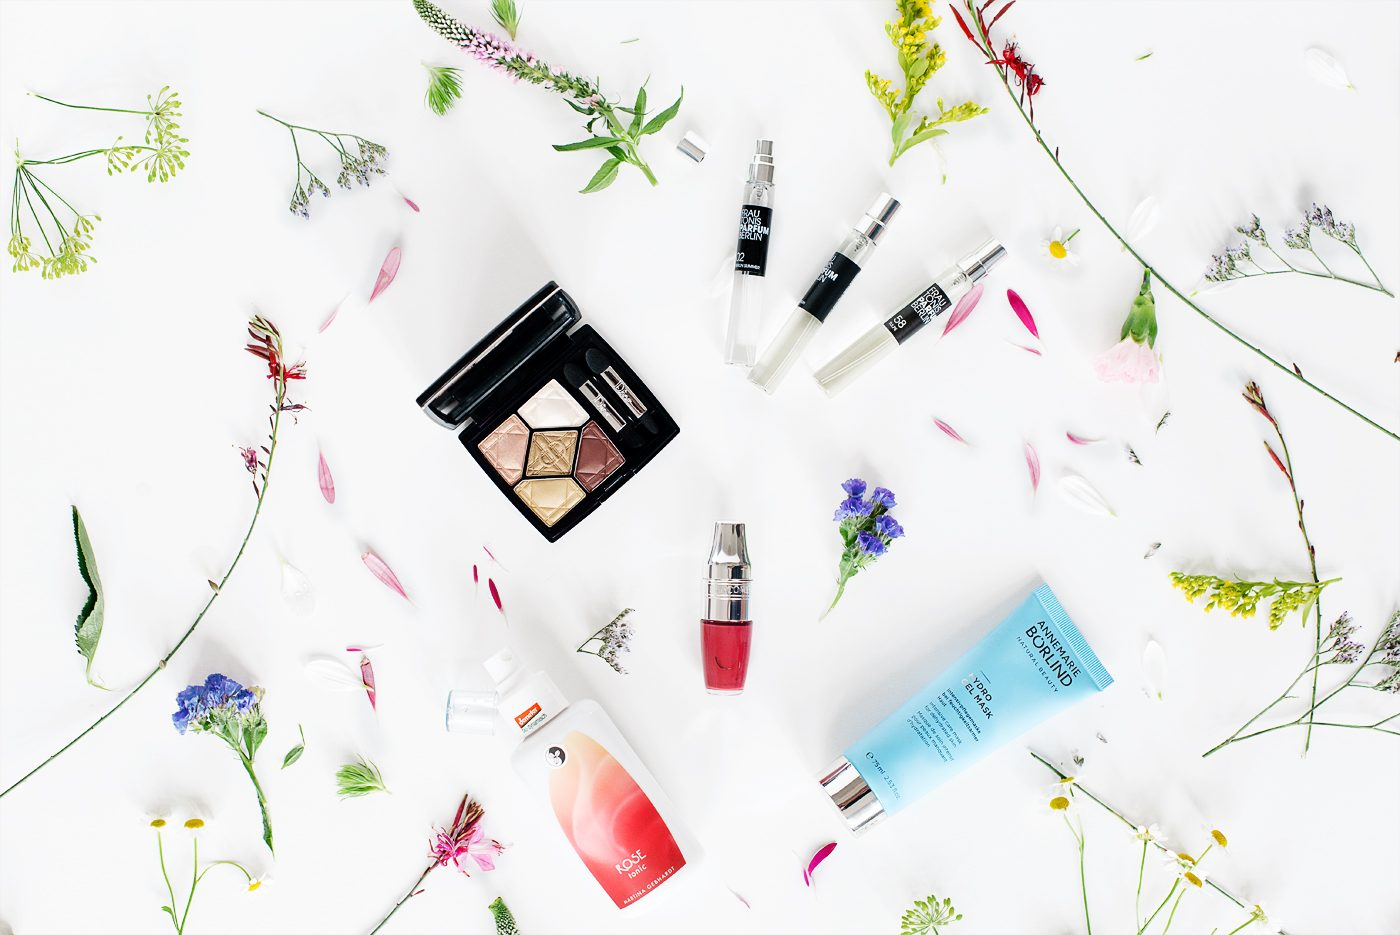 Beauty: My Favorite 5 Beauty Products for Summer